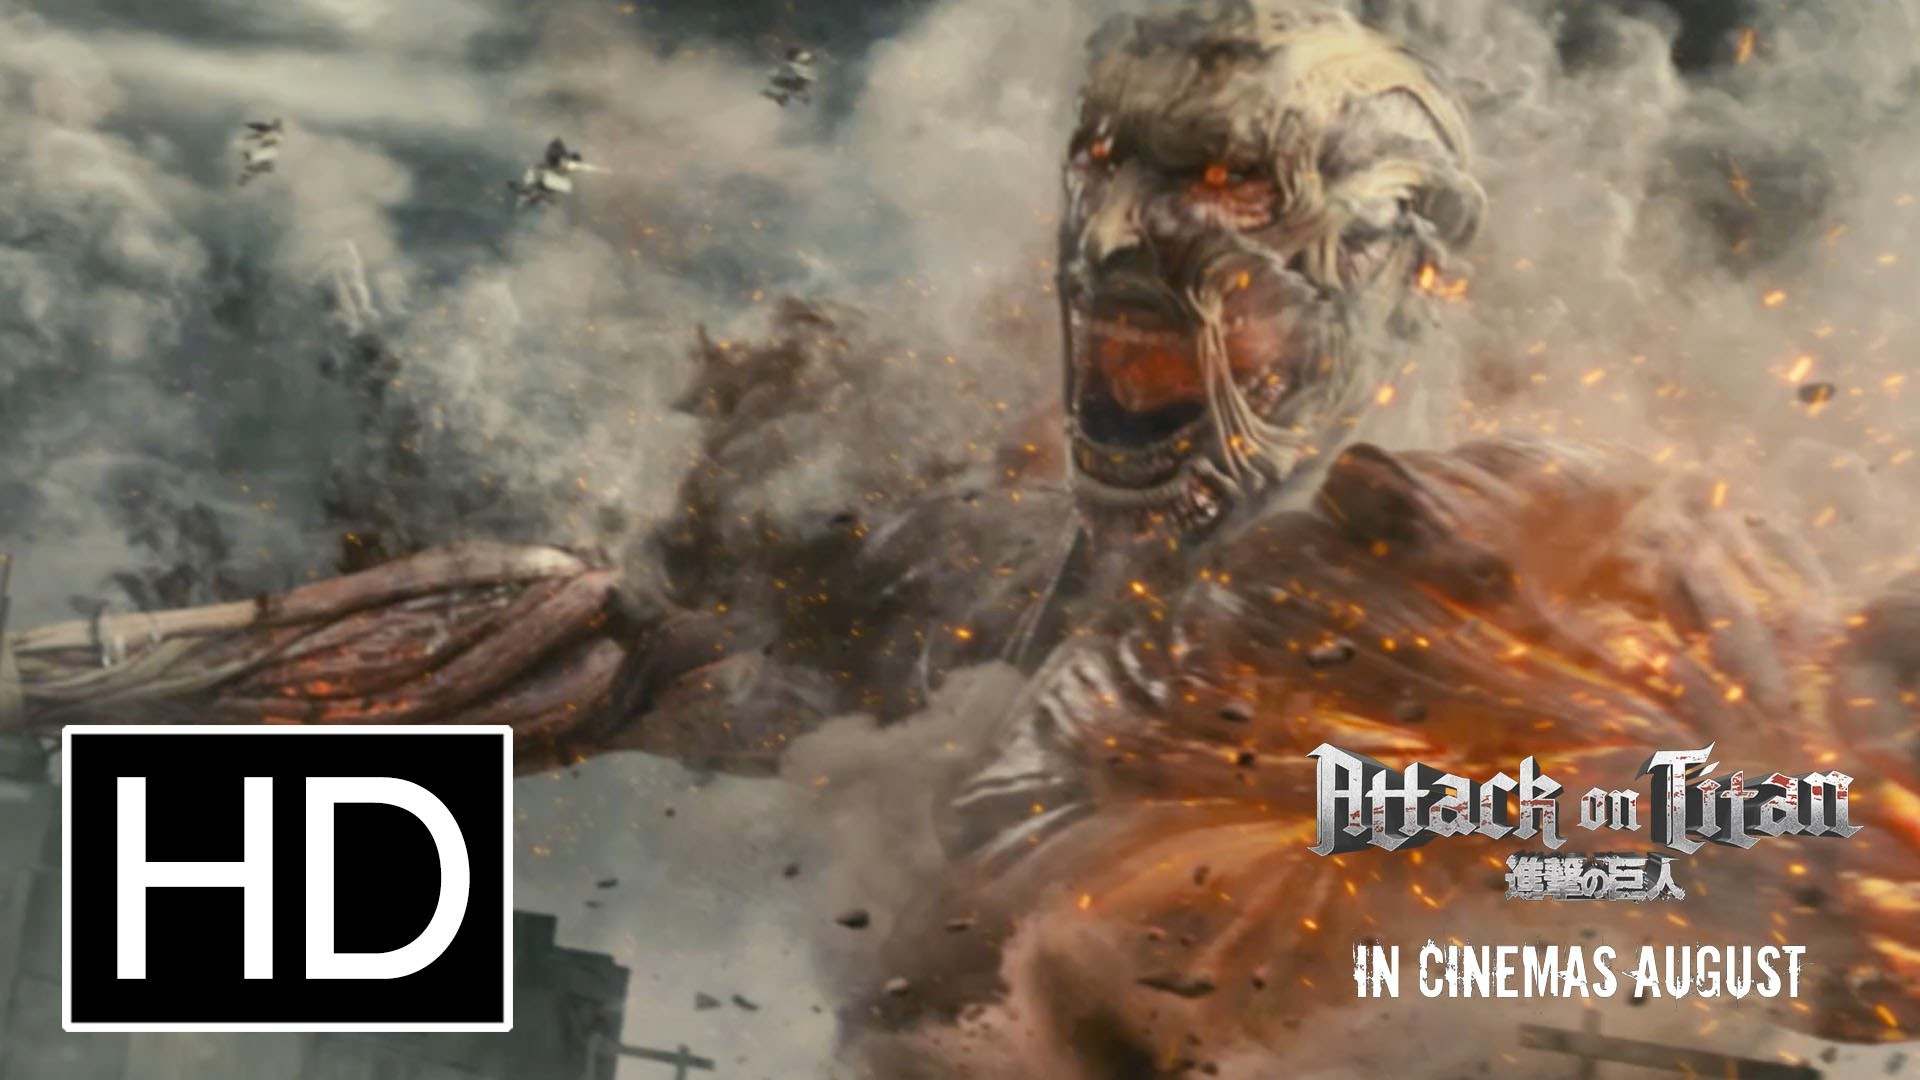 Tons of awesome attack on titan live wallpapers to download for free. 134+ Attack on Titan Live